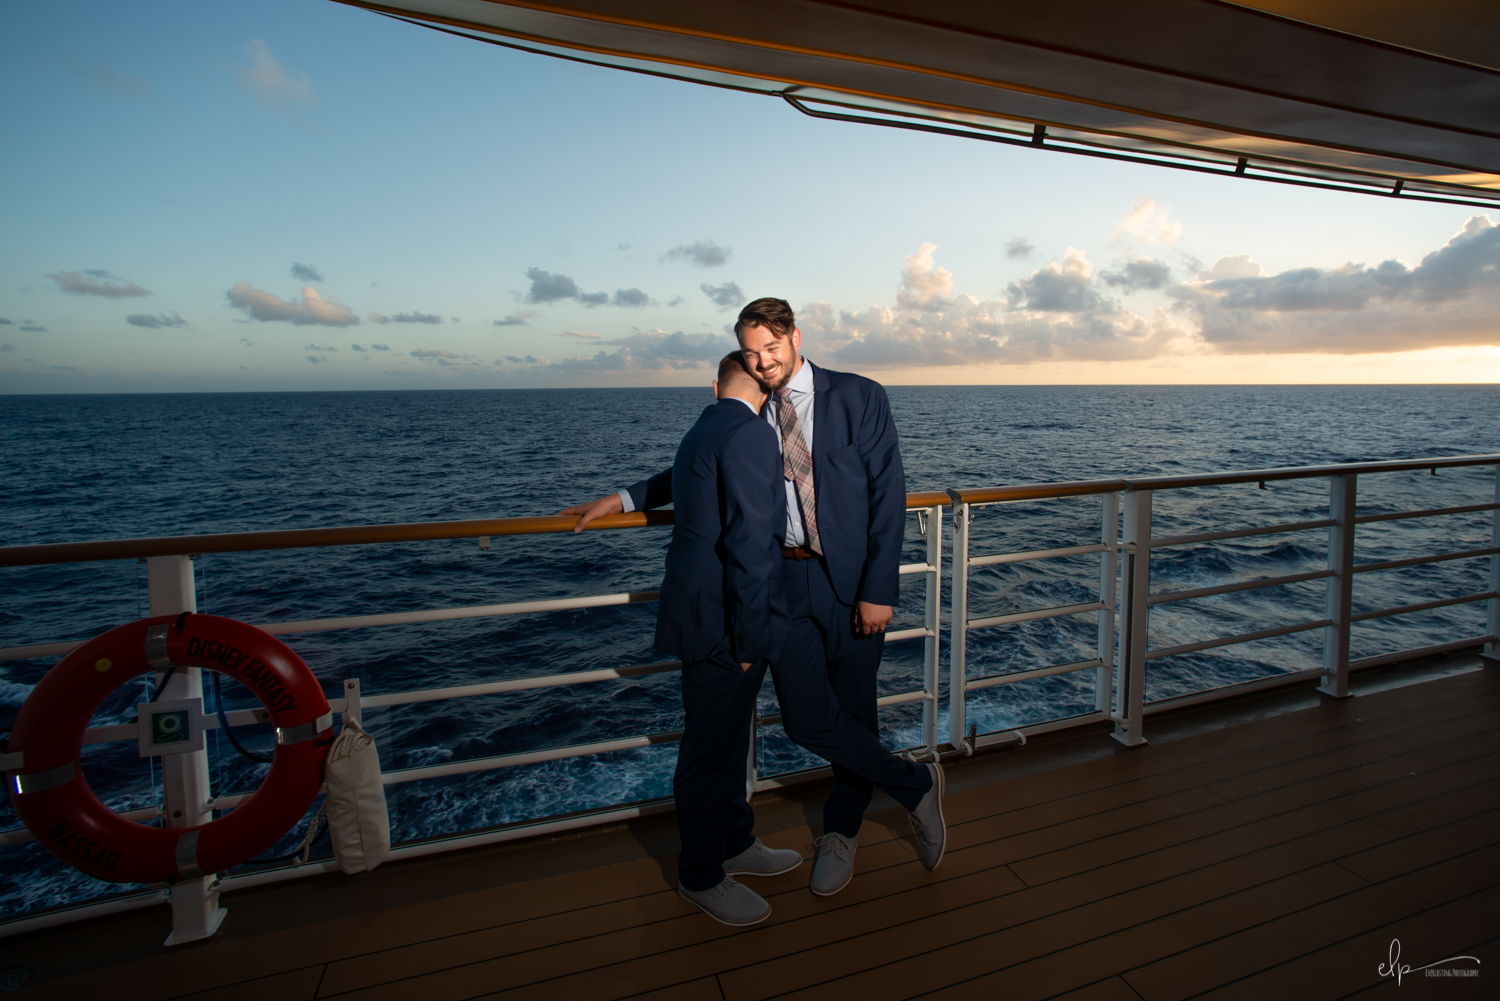 Disney-Cruise-Line-Disney-Fantasy-Wedding-Photography-4.jpg